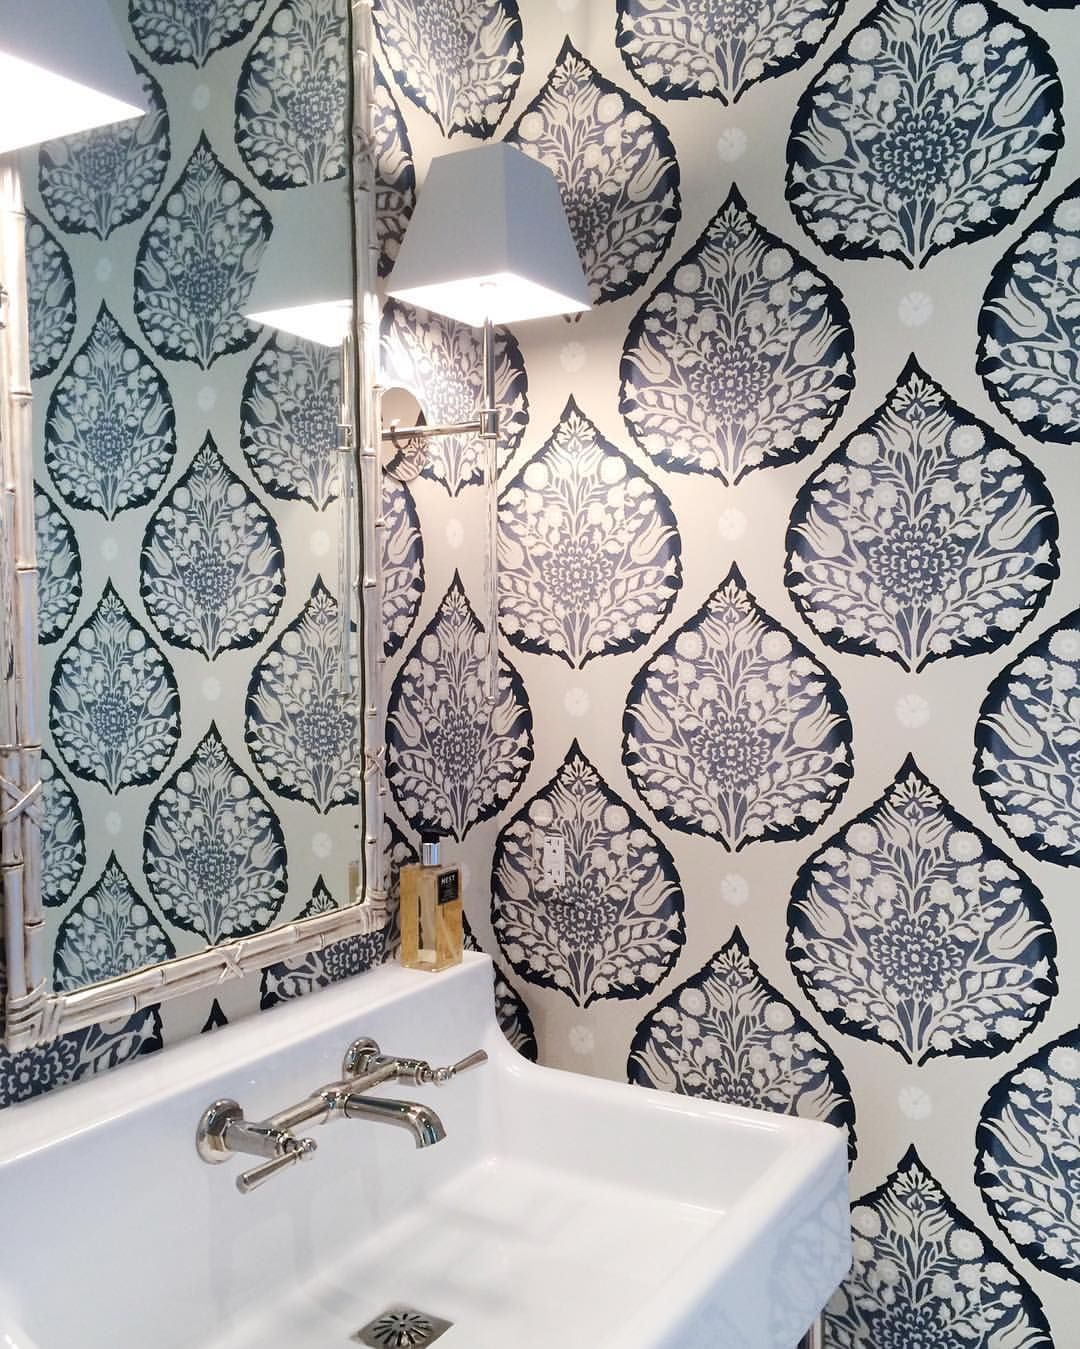 Powder Room Wallpaper Galbraith And Paul Lotus Wallpaper In A Powder Room By Mccann